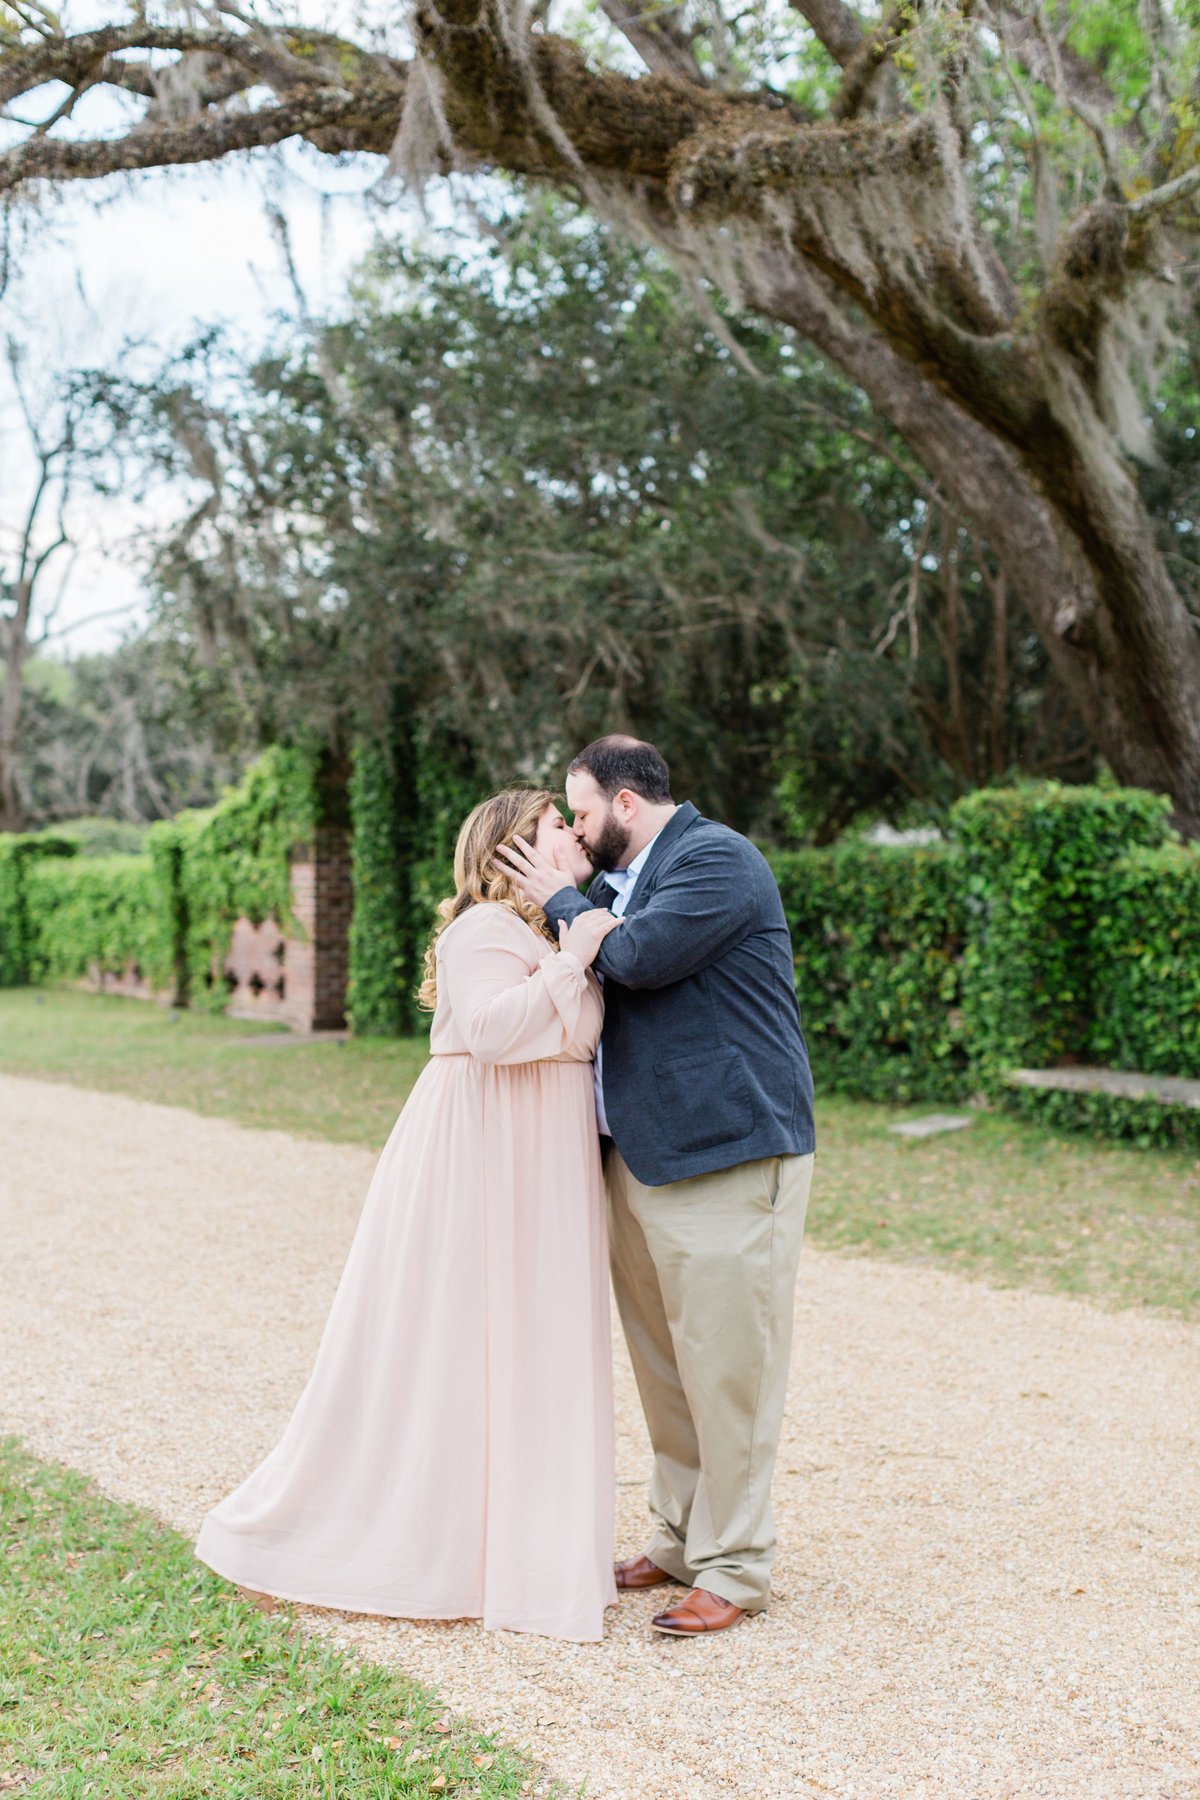 CourtneyWoodhamPhoto-28